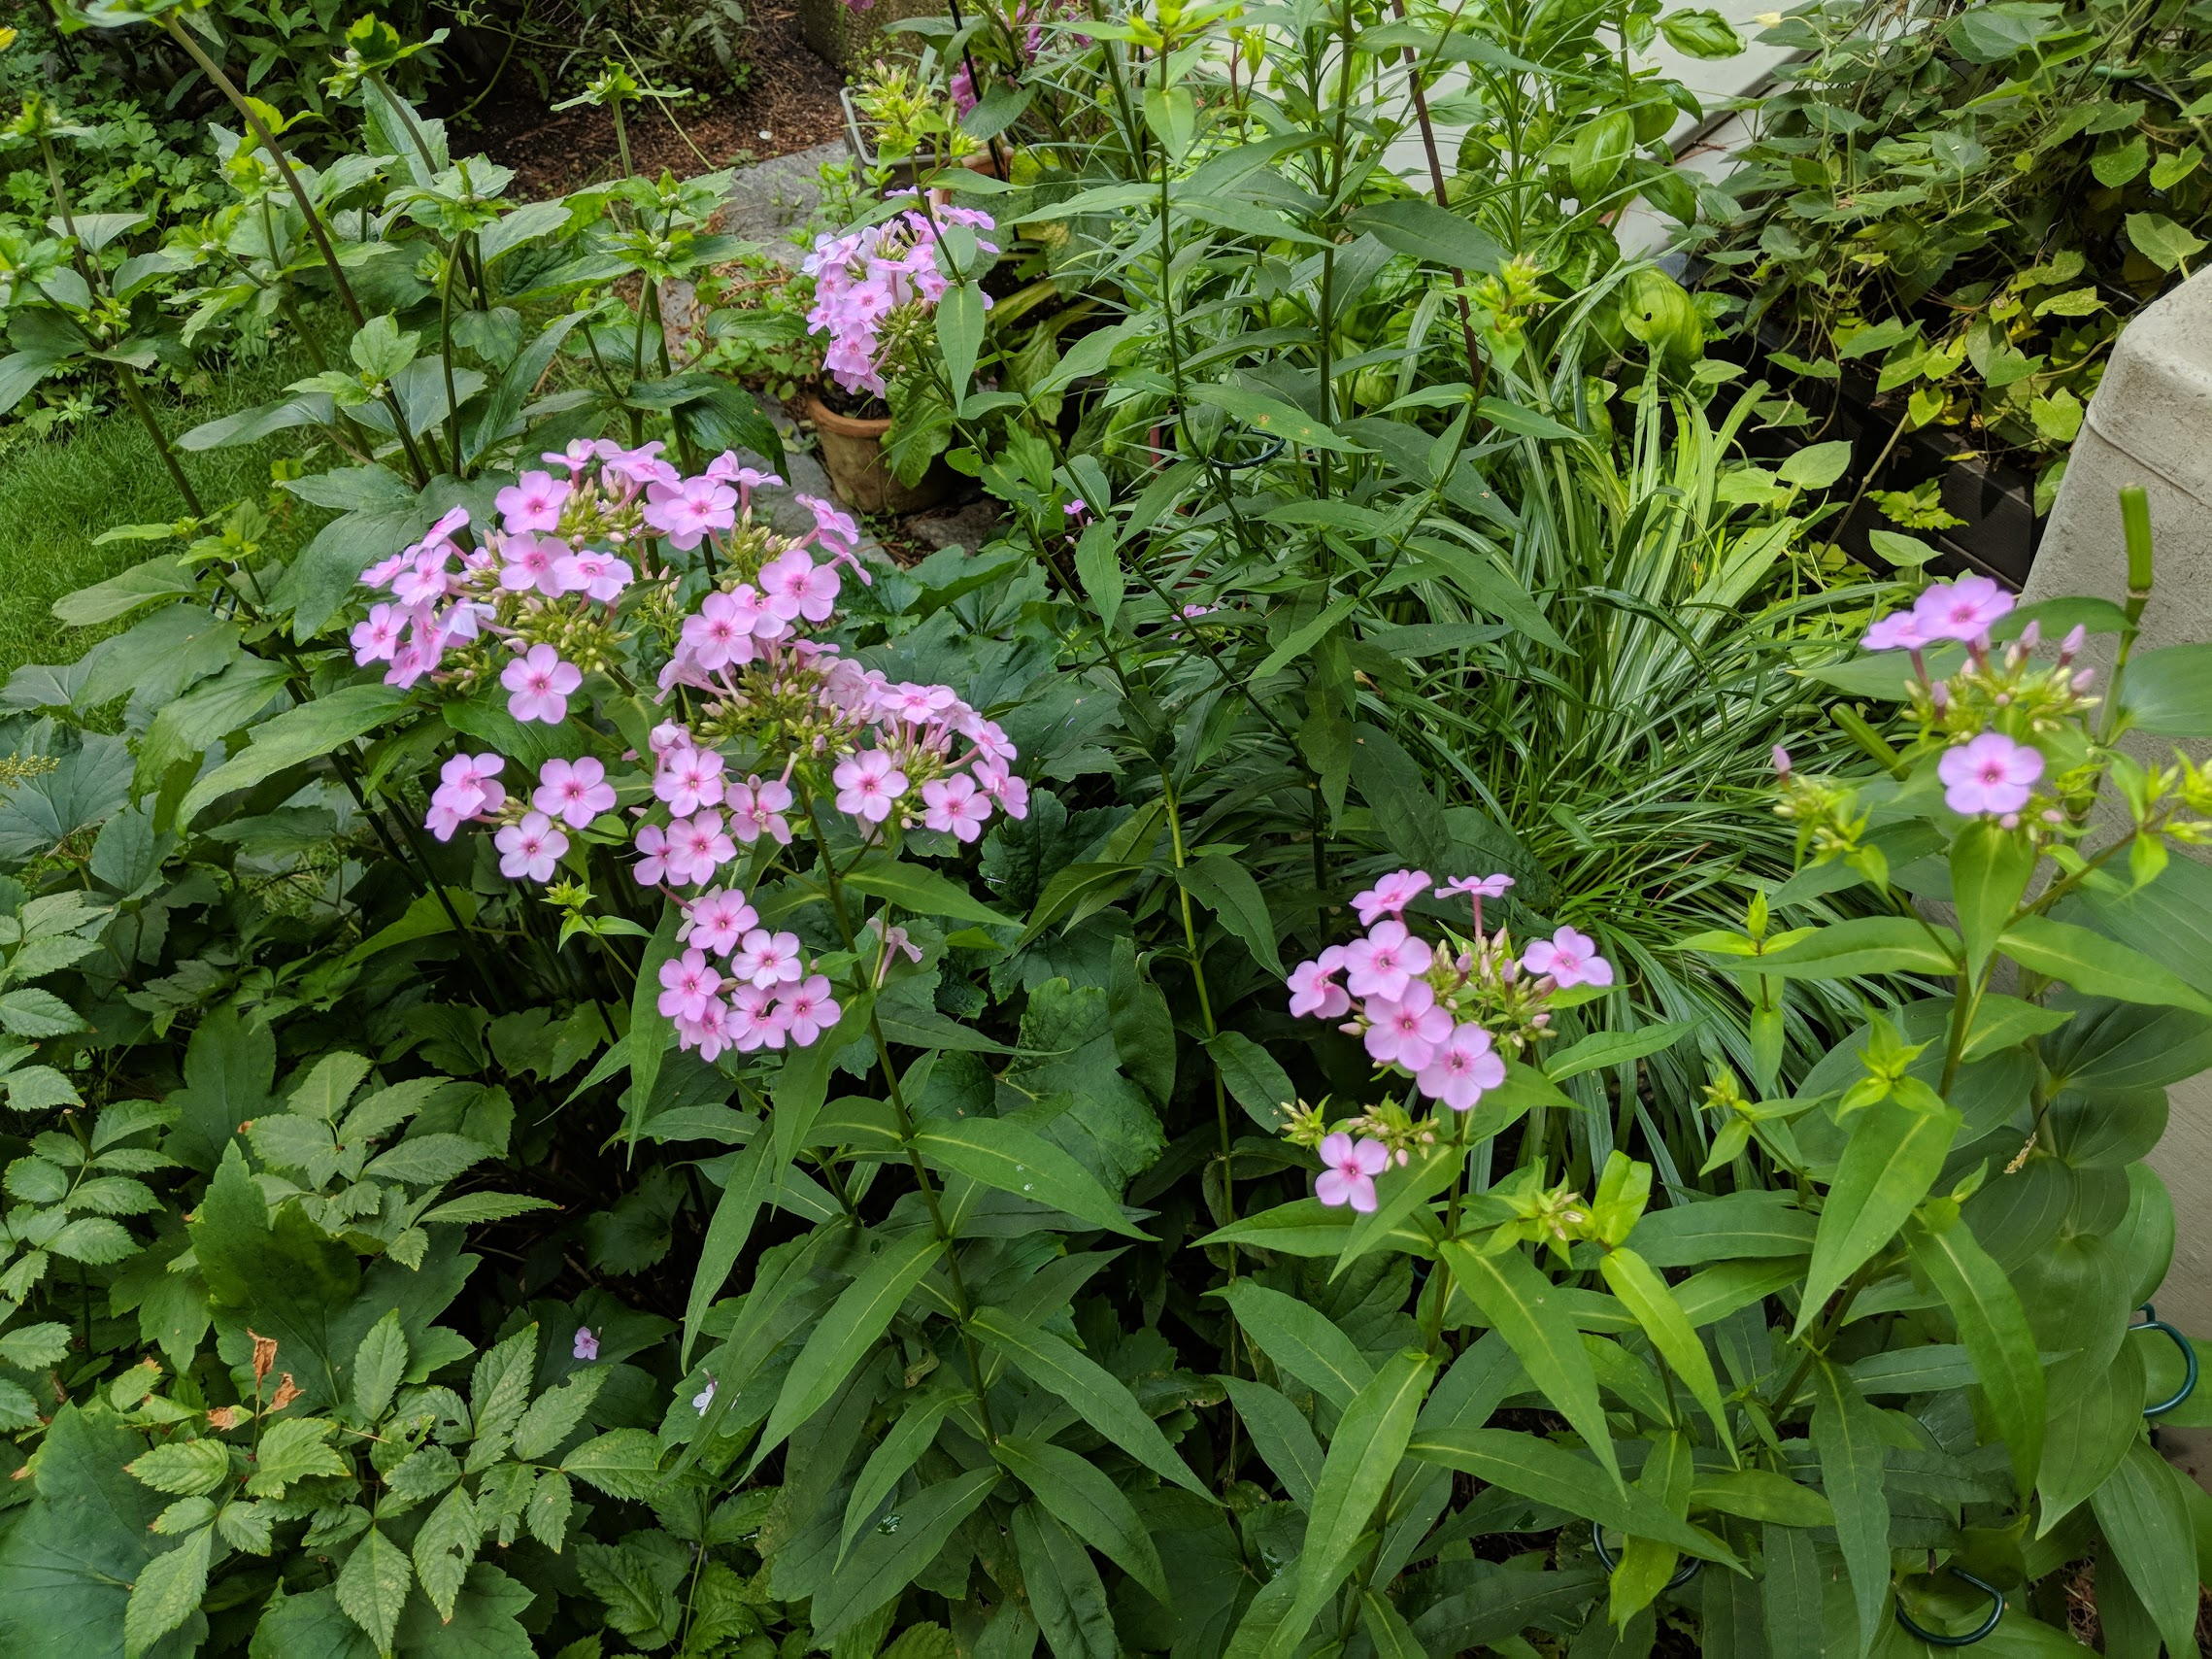 Phlox paniculata 'Speed Limit45' among dense plantings of Astilbe and Japanese Anemone